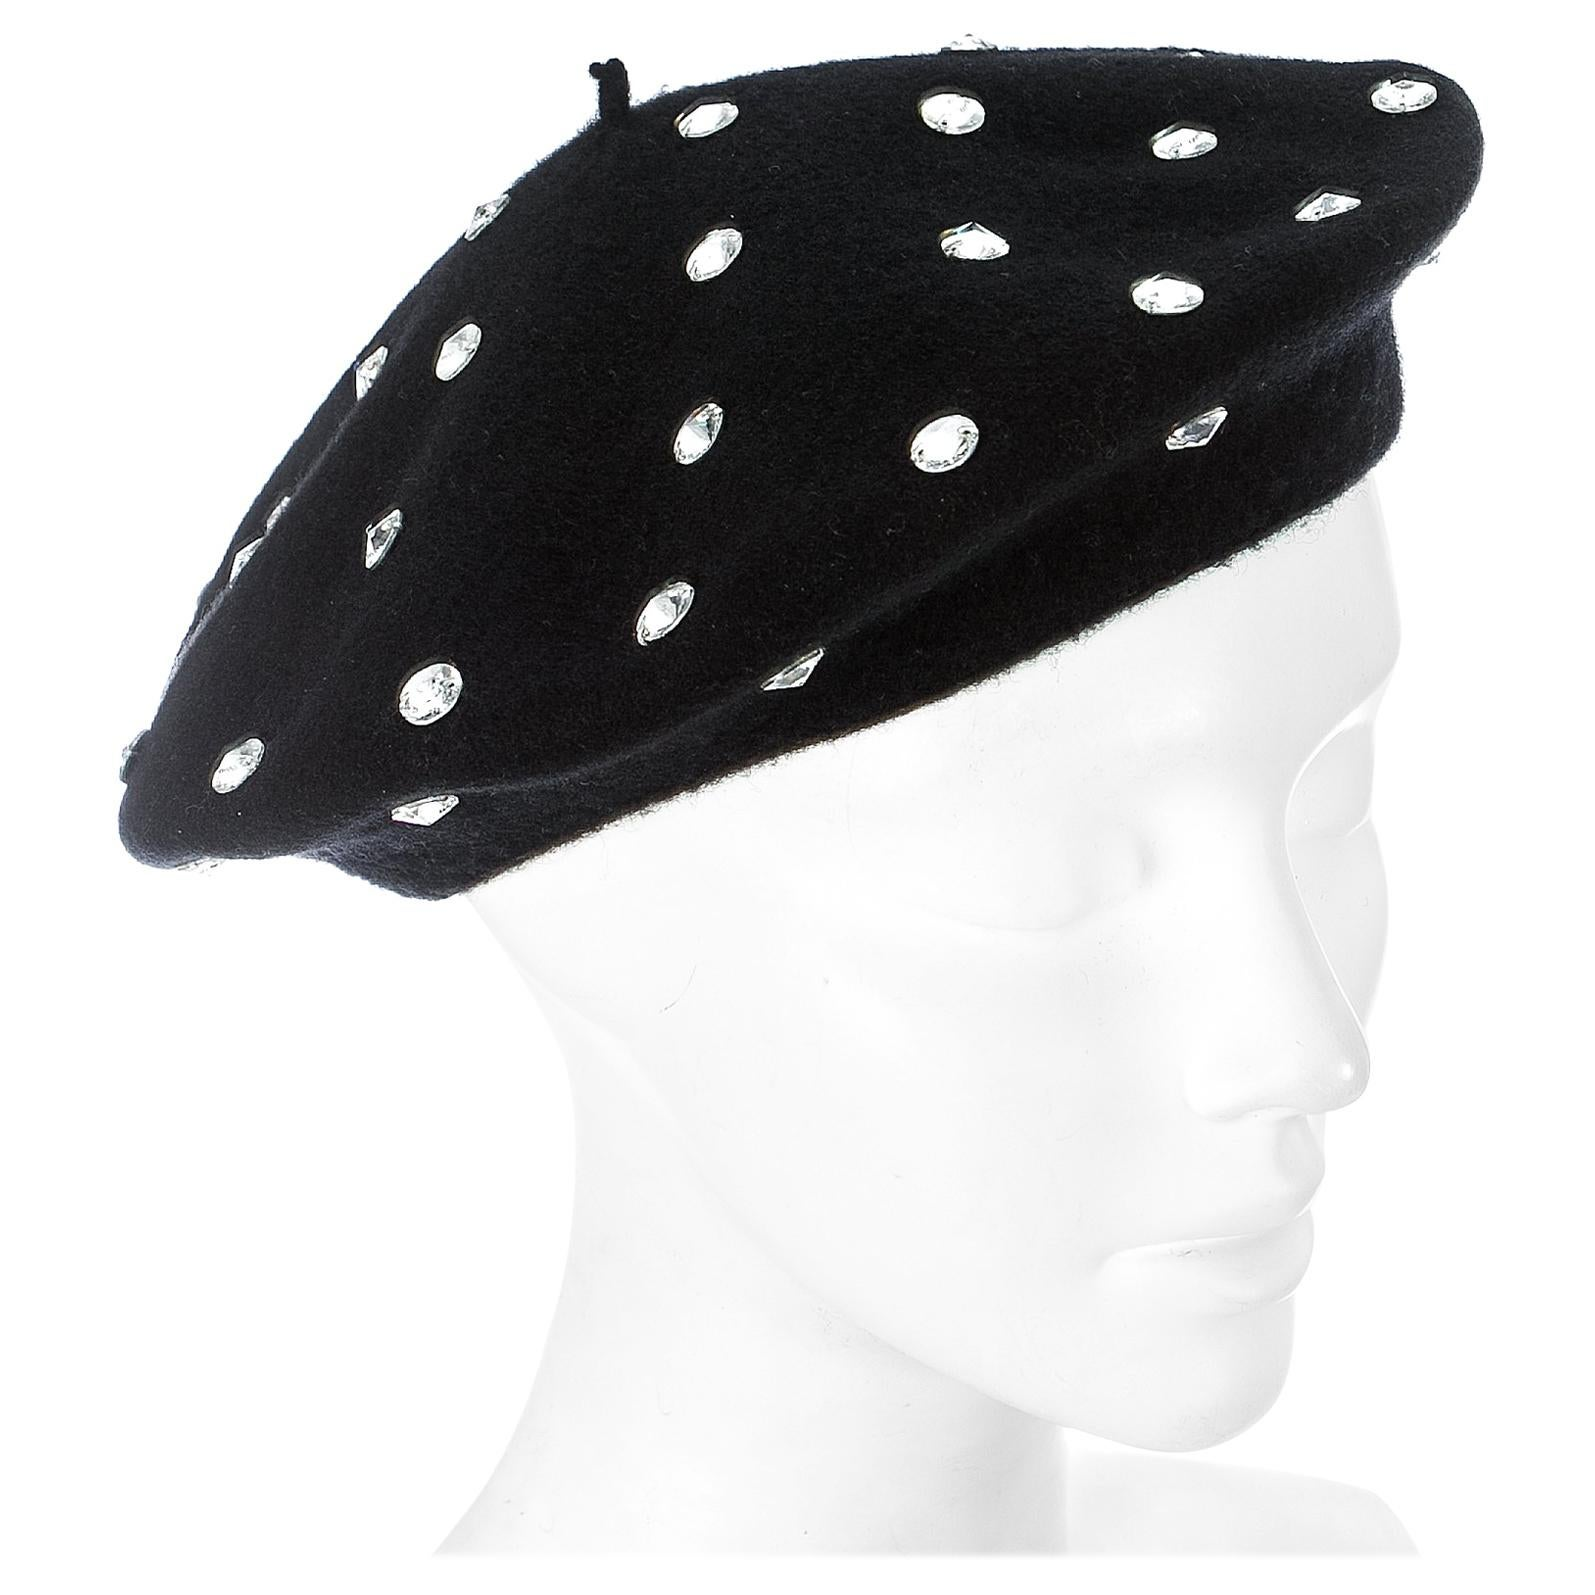 Dolce & Gabbana black wool beret with crystals, A/W 2000